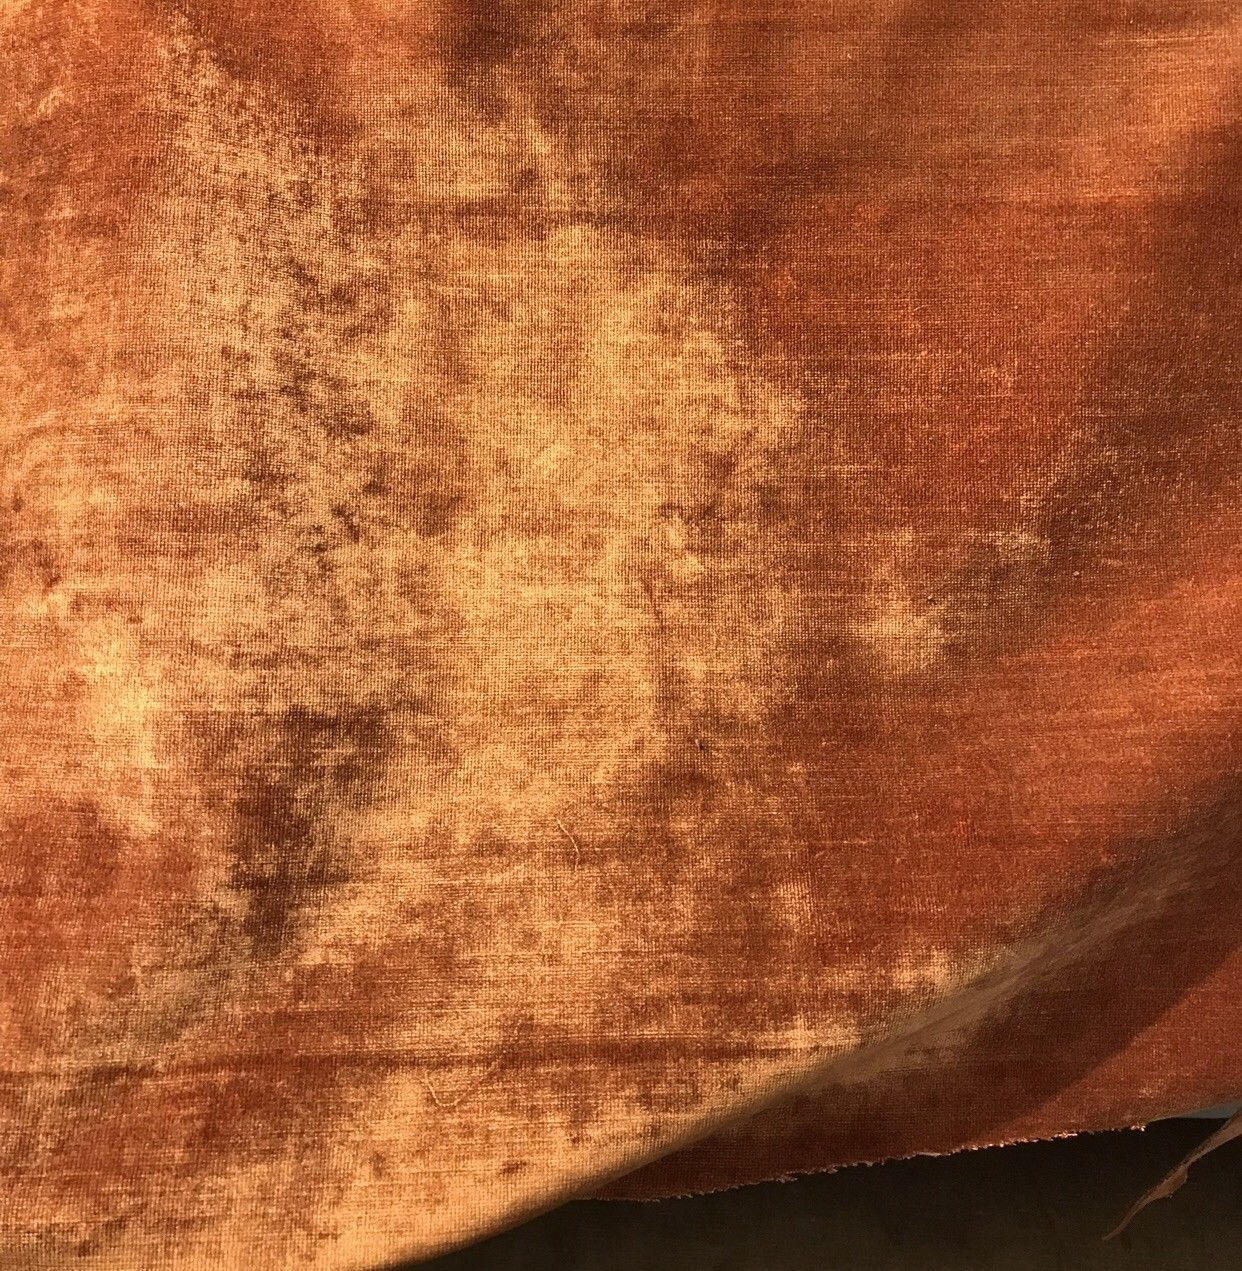 Designer Velvet Upholstery Fabric - Burnt Orange- By the yard - Fancy Styles Fabric Pierre Frey Lee Jofa Brunschwig & Fils